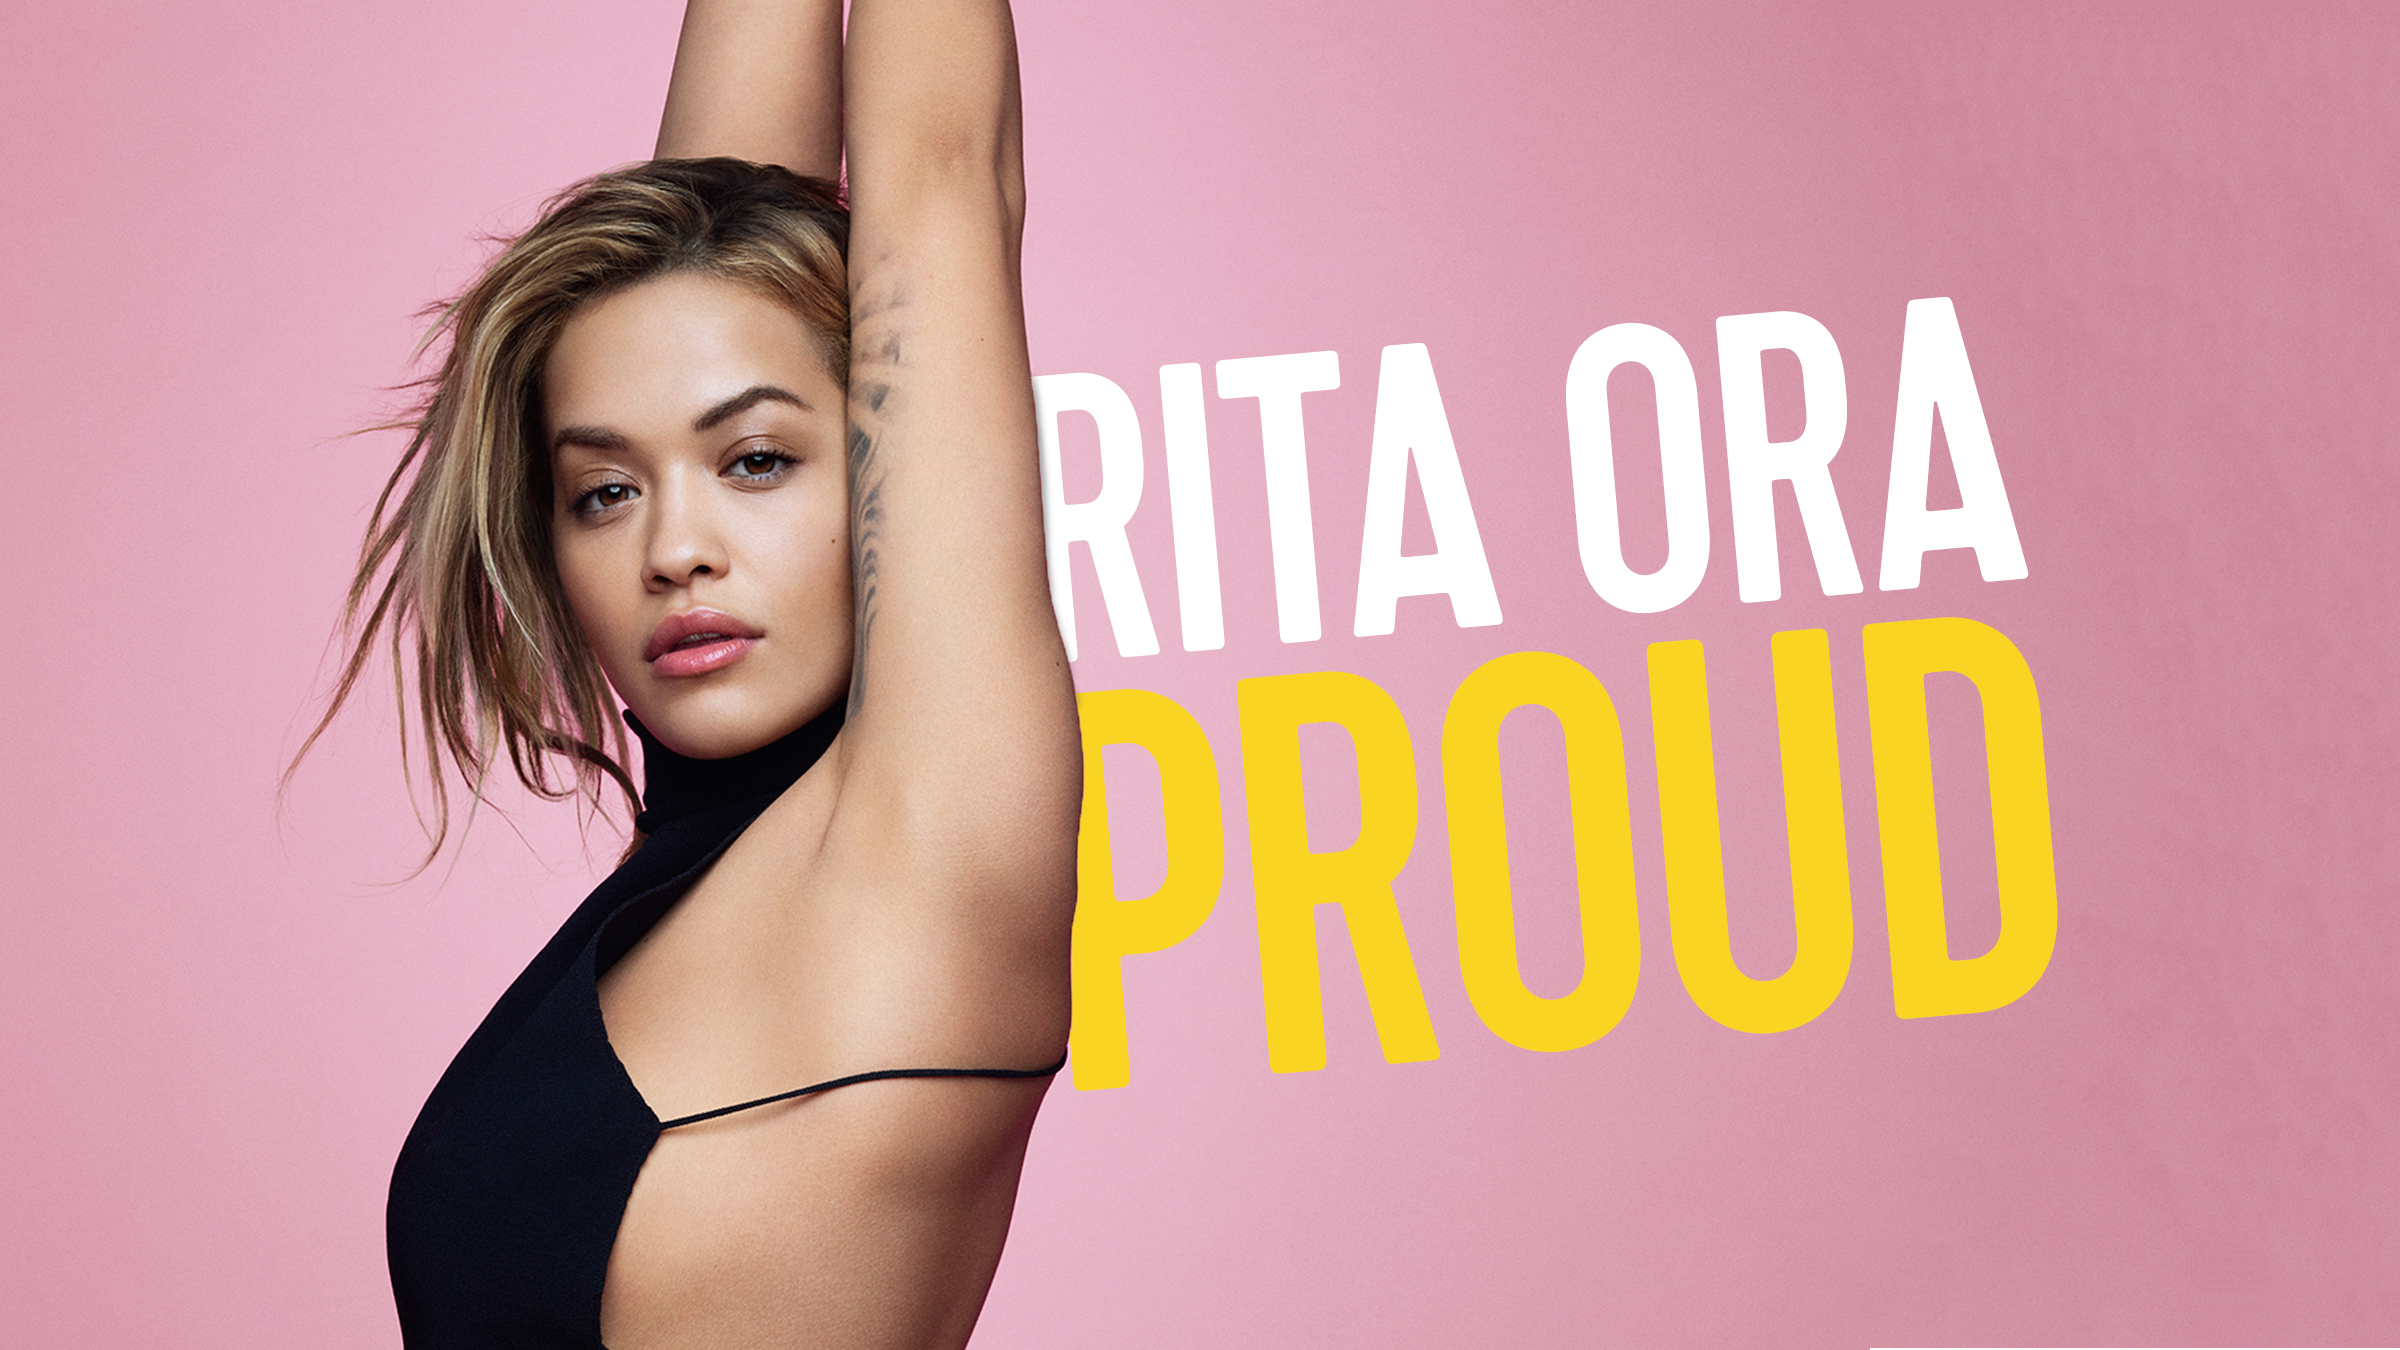 Rita ora proud   home